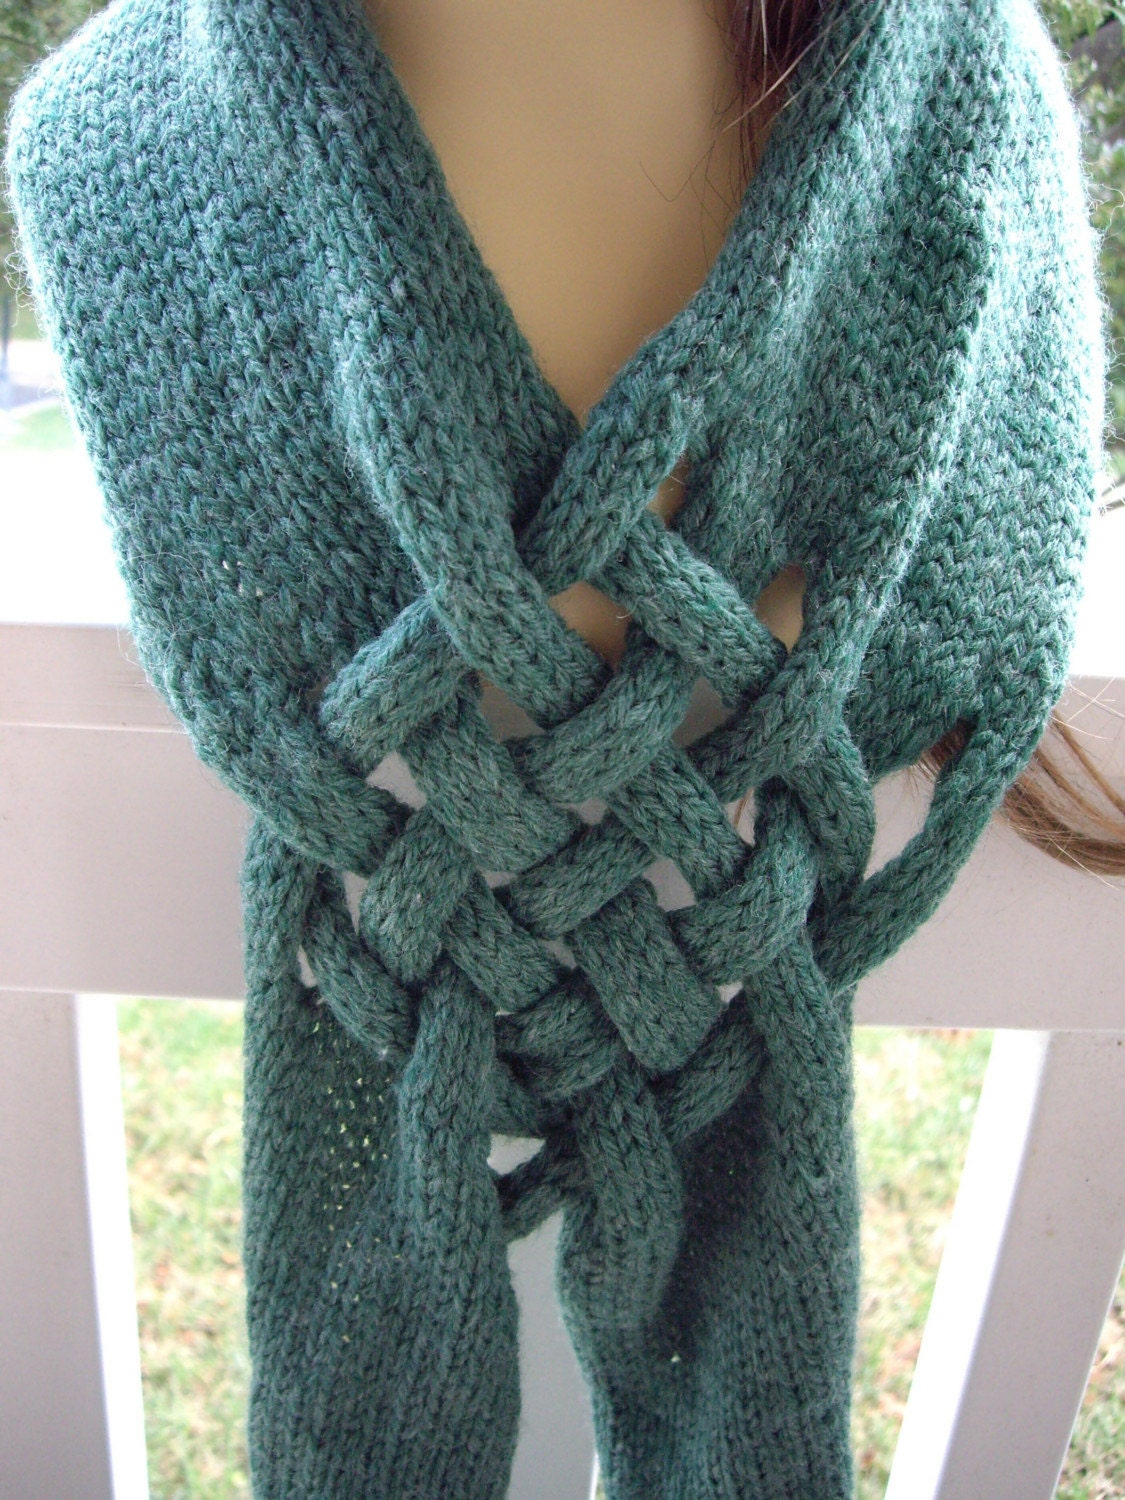 Celtic Knot Scarf Knitting Pattern : Forest Green Heather Celtic Knot Knit Scarf Breast by AntiChristy